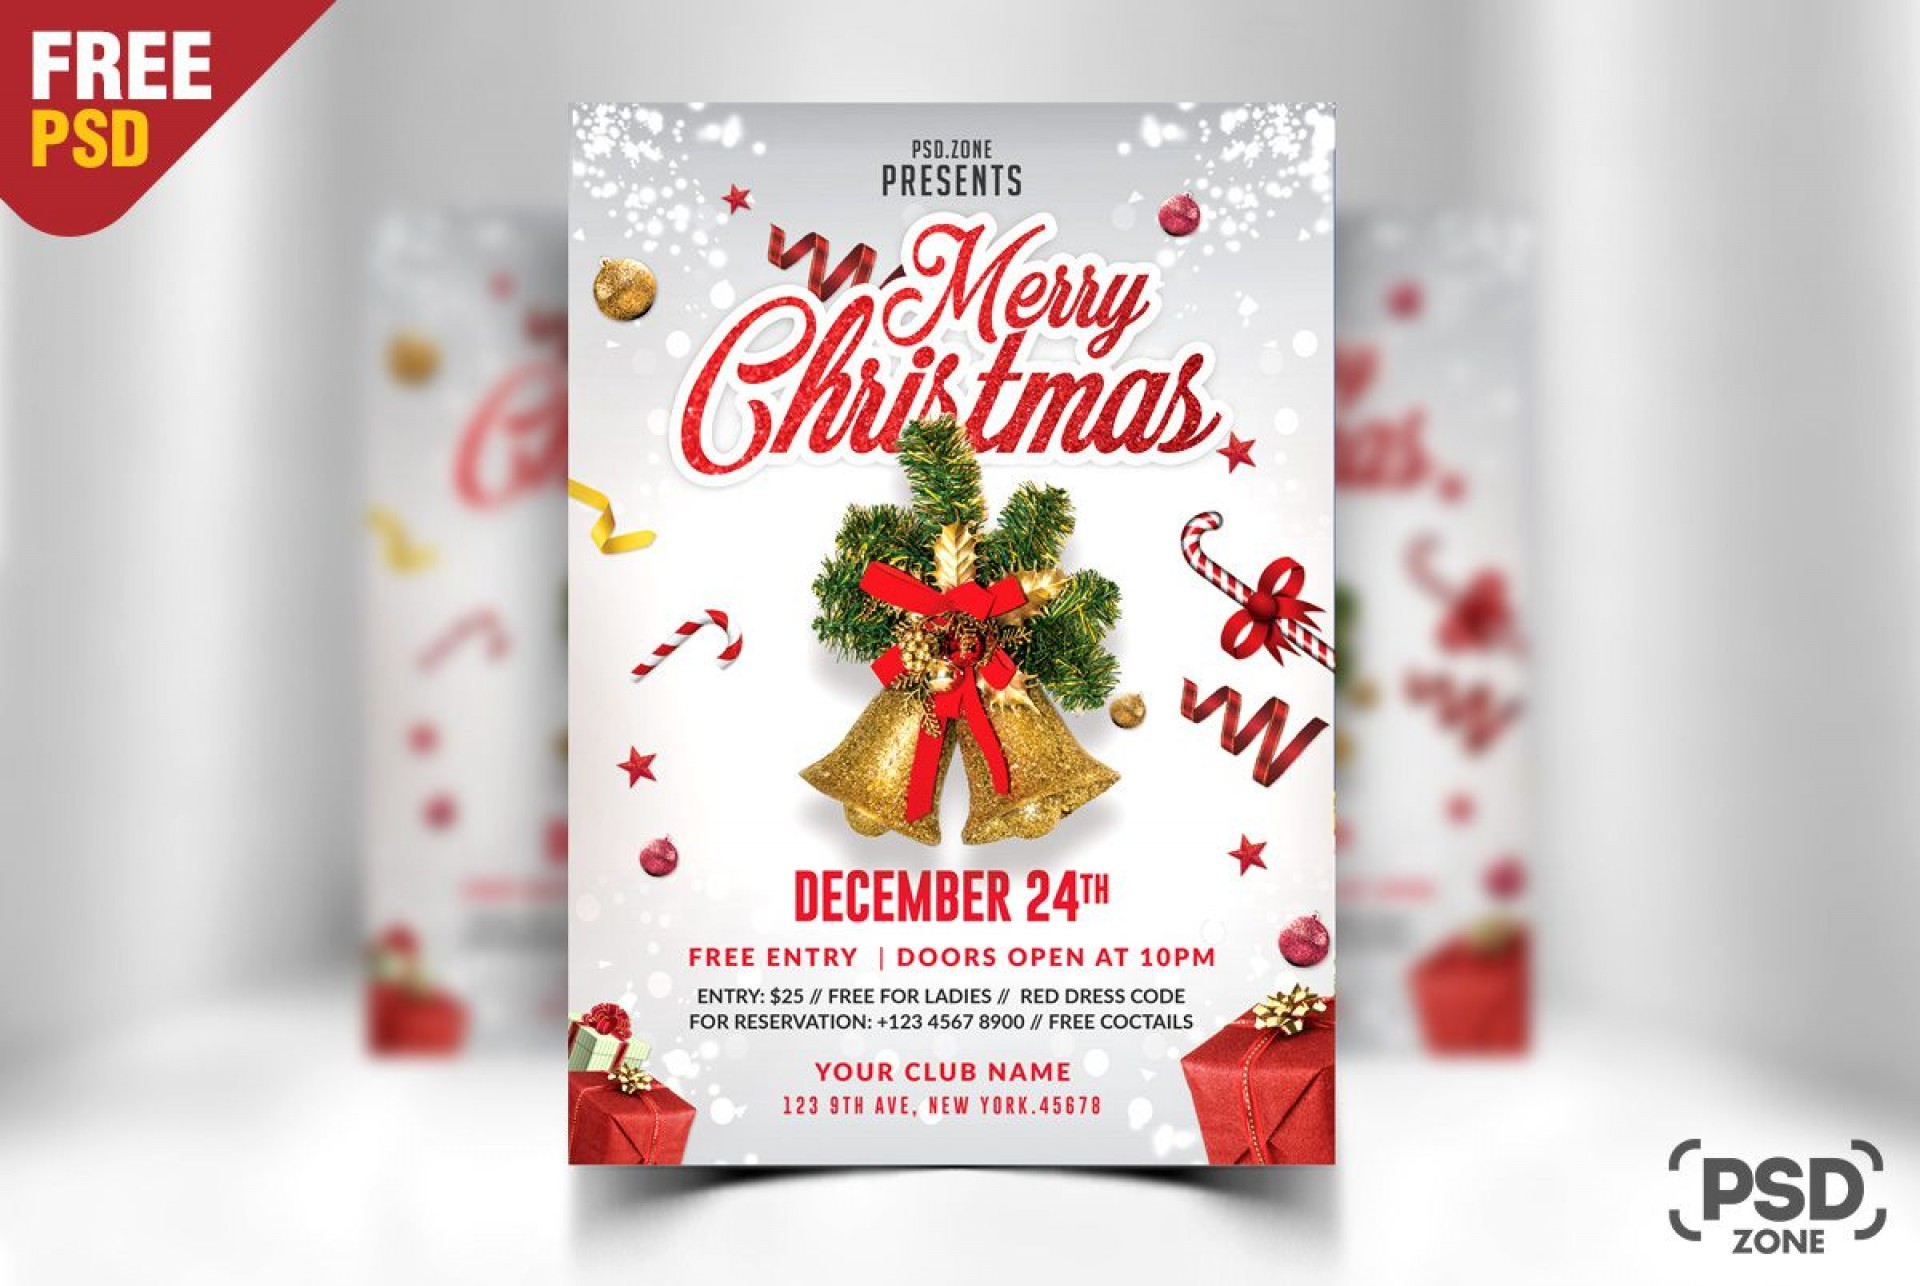 008 Singular Free Christma Poster Template Sample  Templates Psd Download Design Word1920